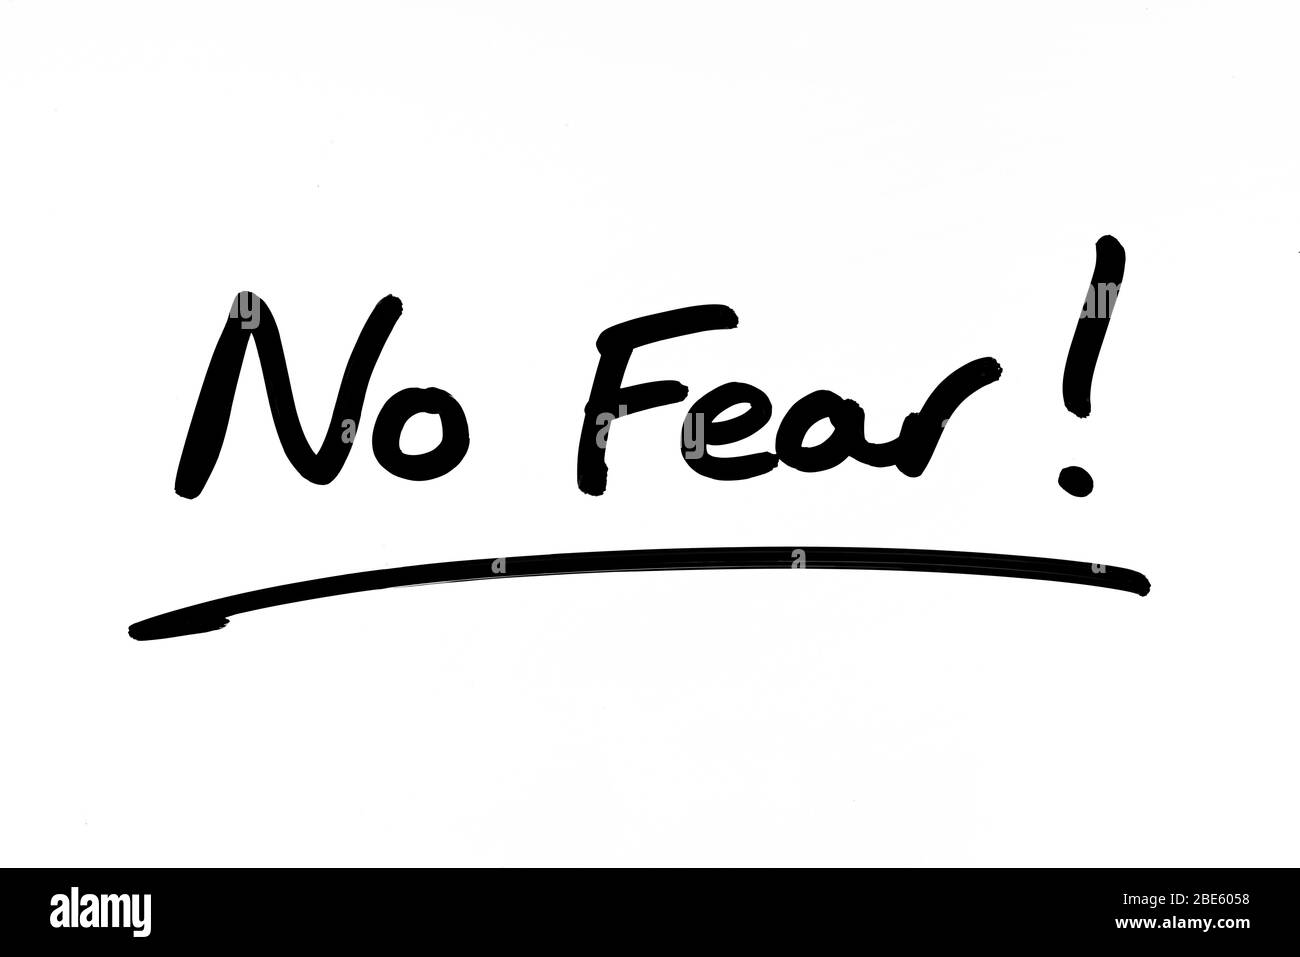 No Fear! handwritten on a white background. Stock Photo